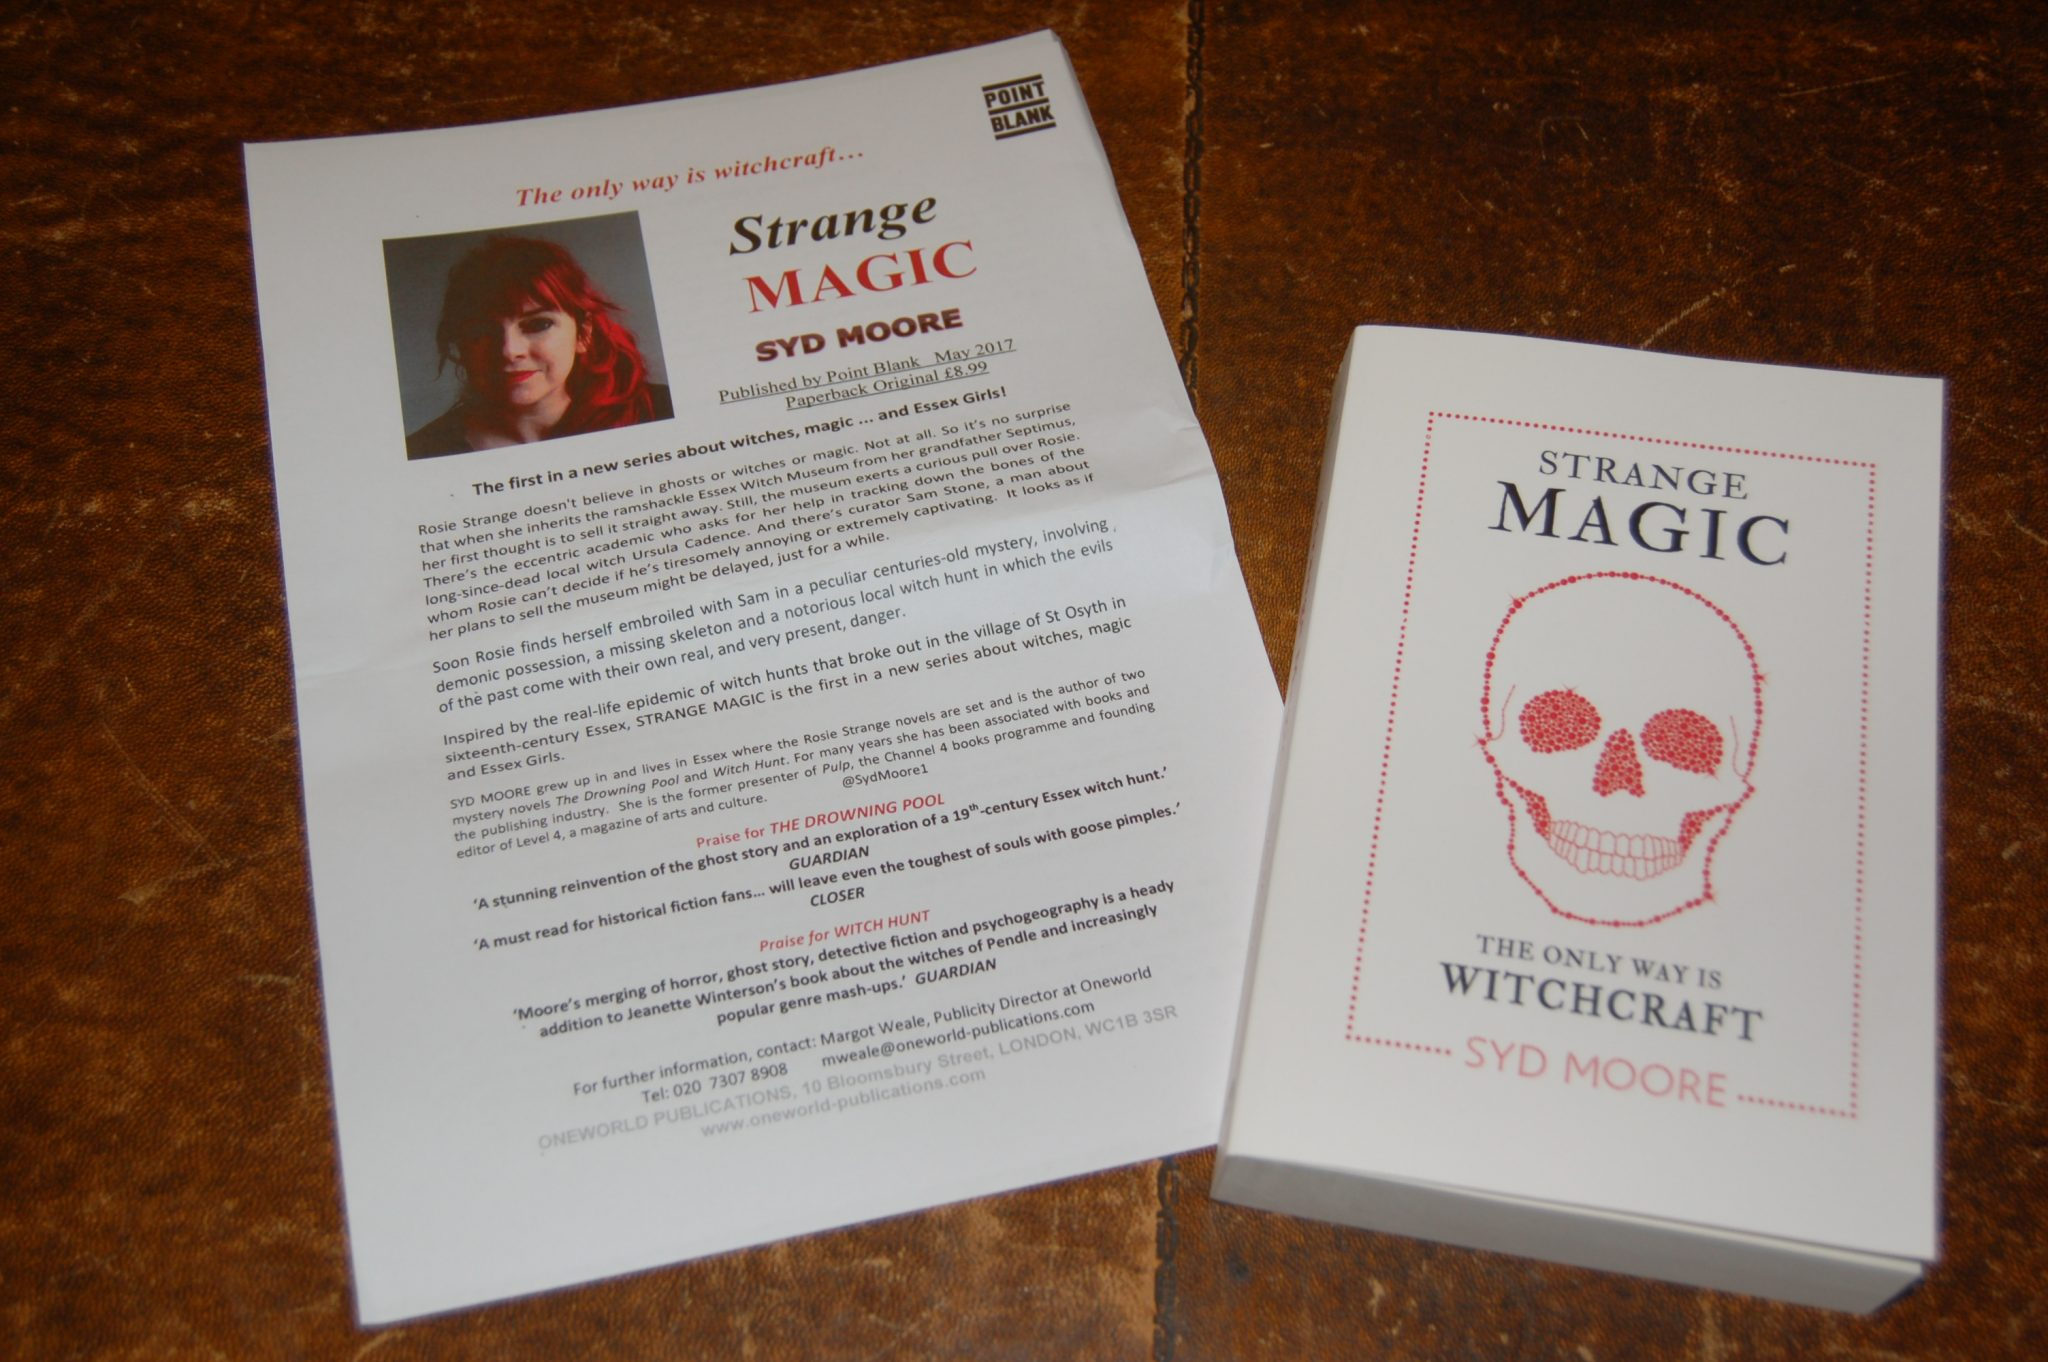 Donation of Strange Magic by Syd Moore